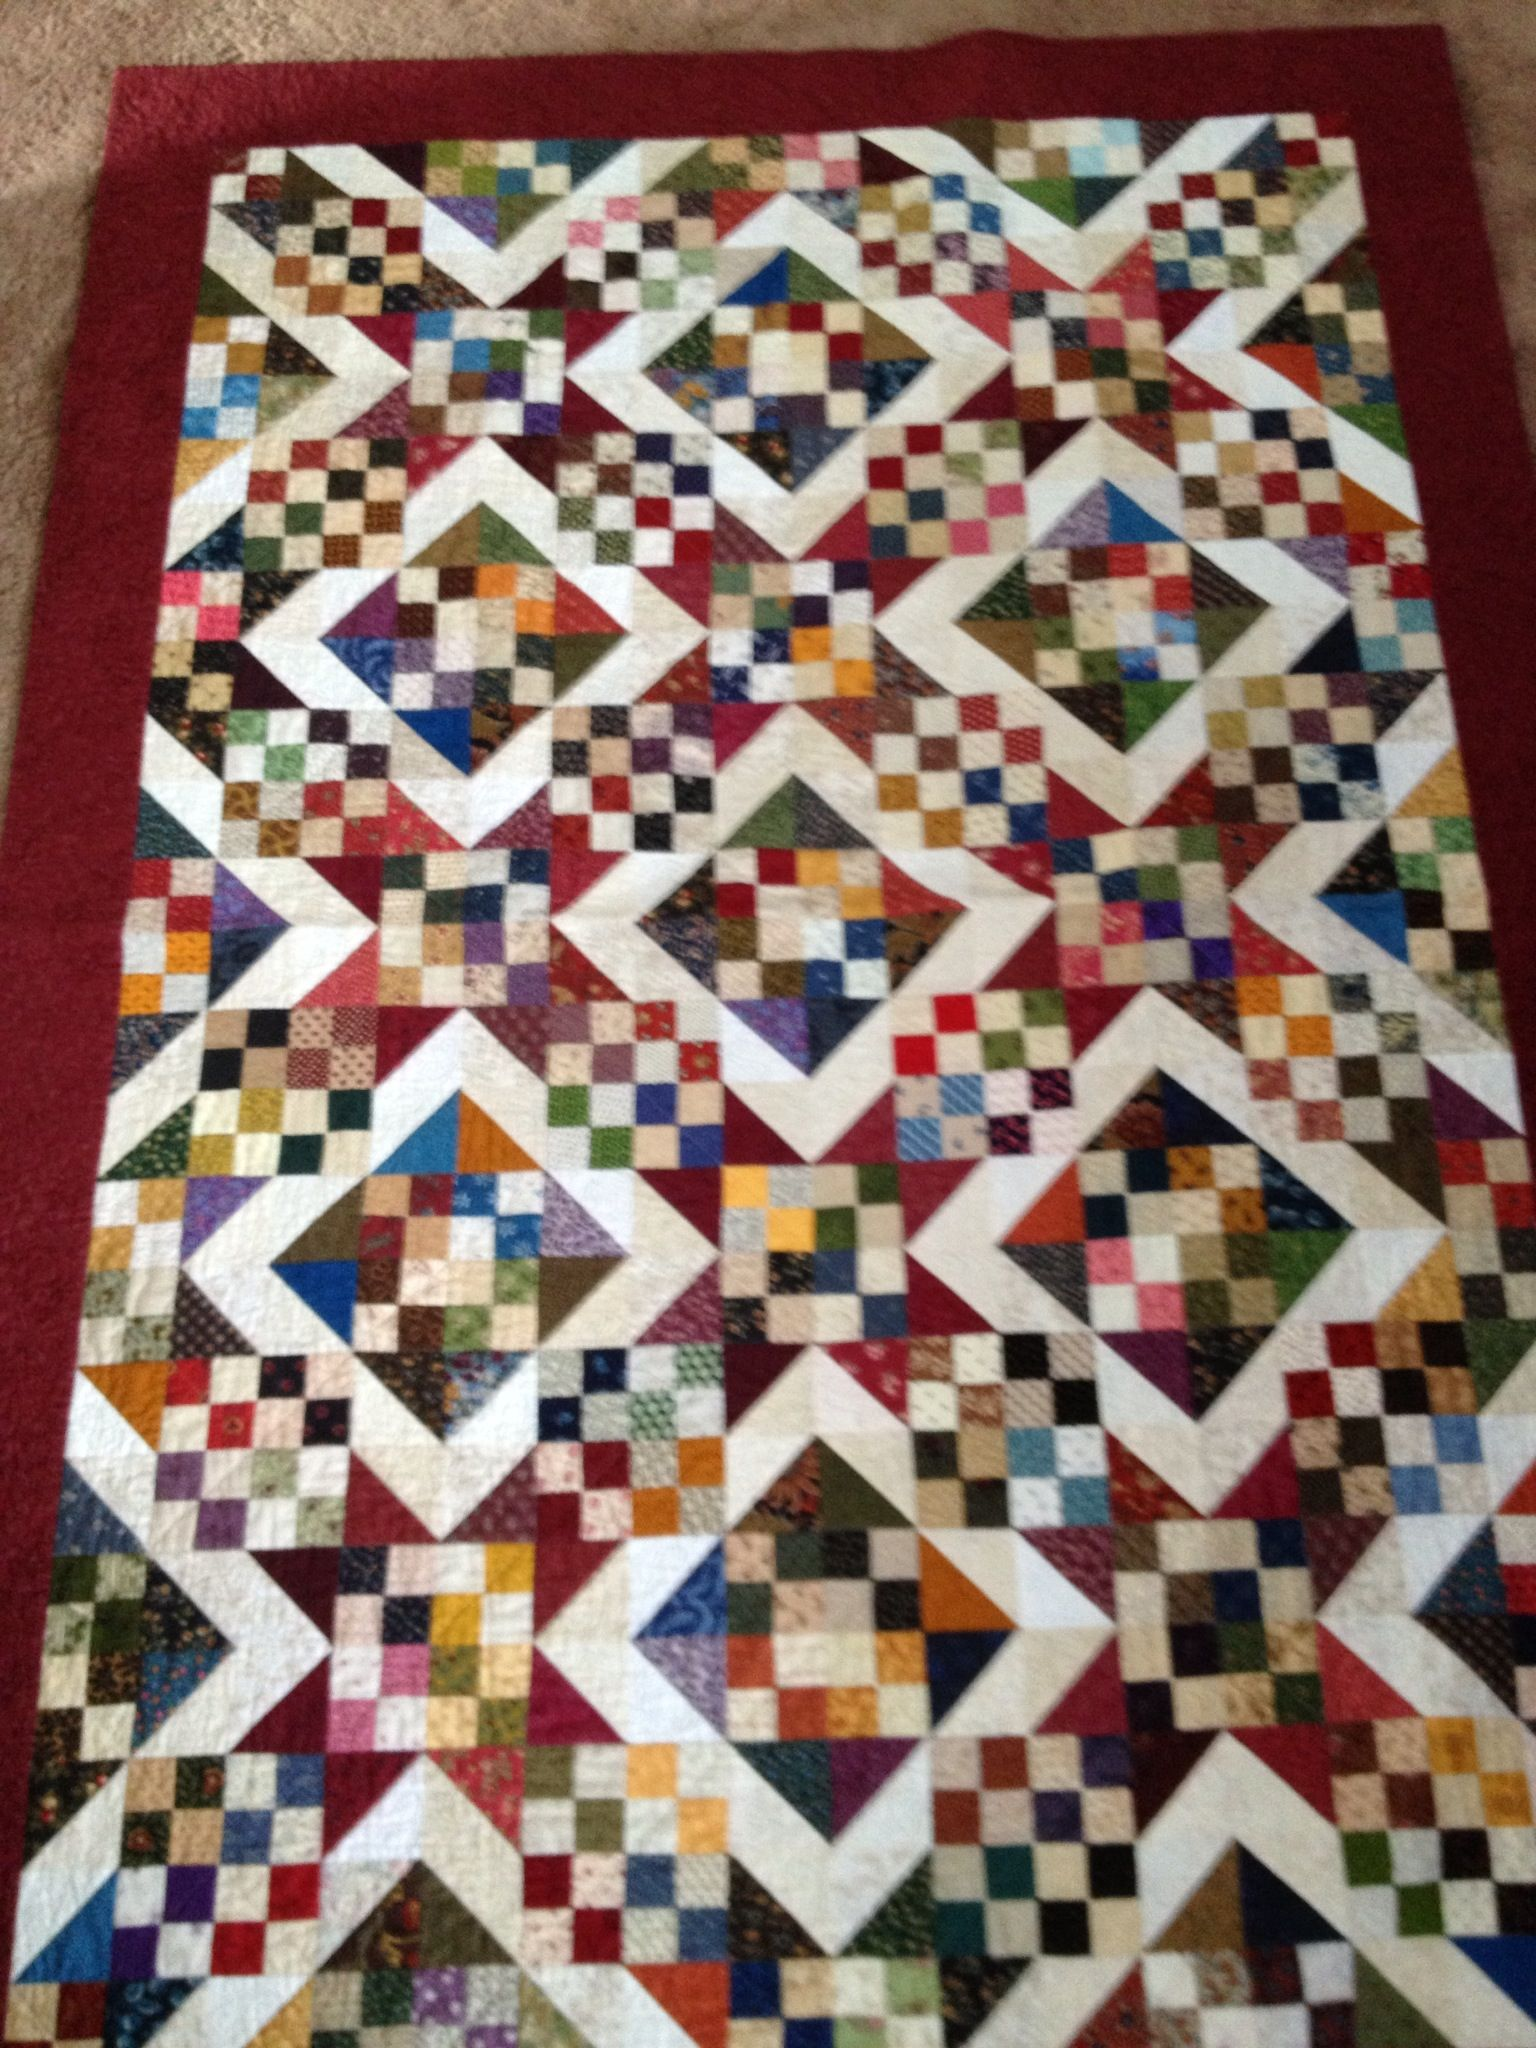 Pattern from the Nickel Quilts book.